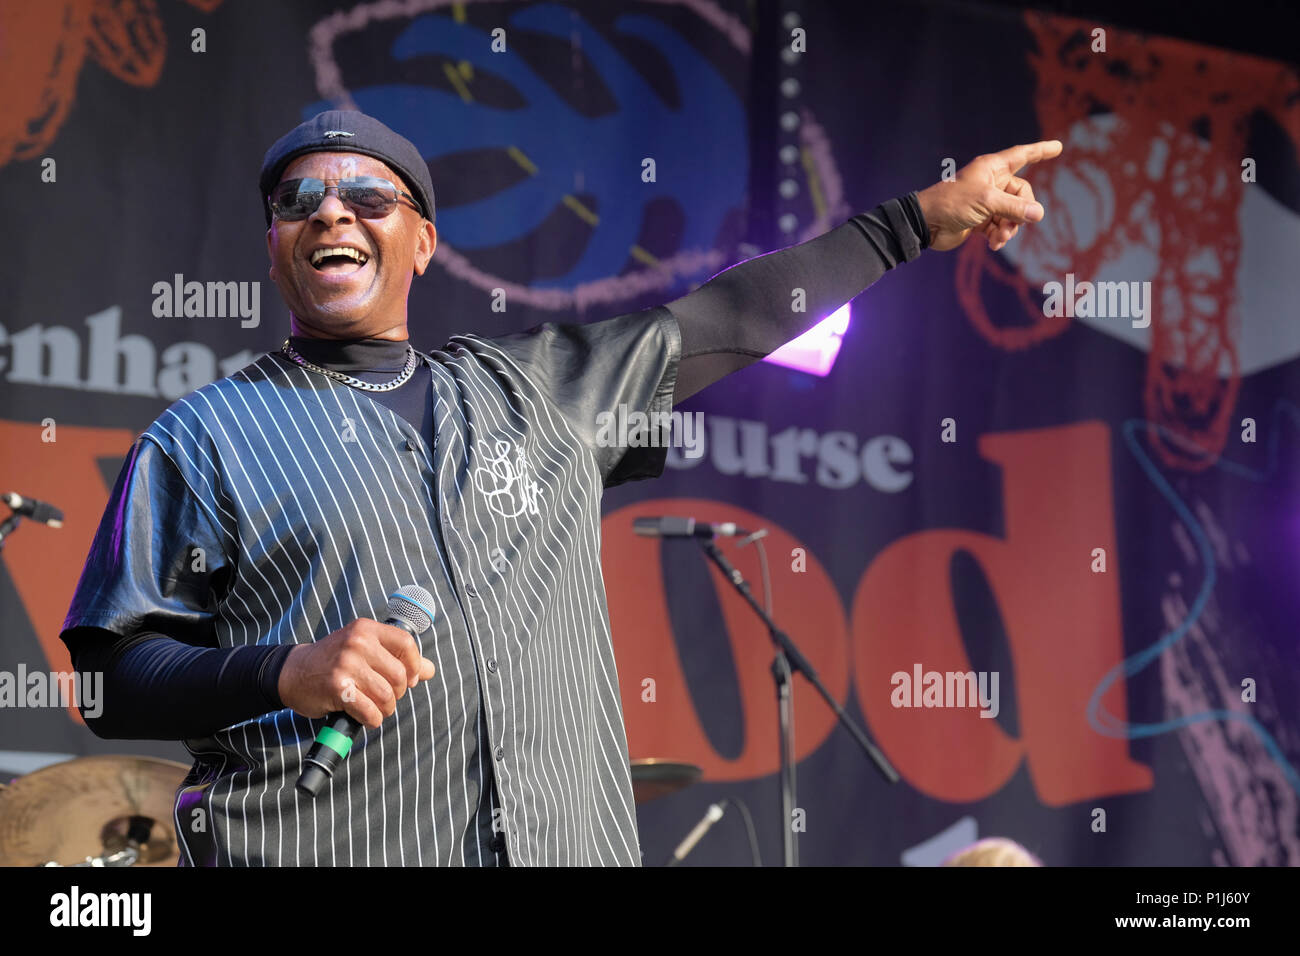 Dave Smith of The Real Thing perform at the Wychwood Festival, Cheltenham, UK. June 1, 2018 - Stock Image